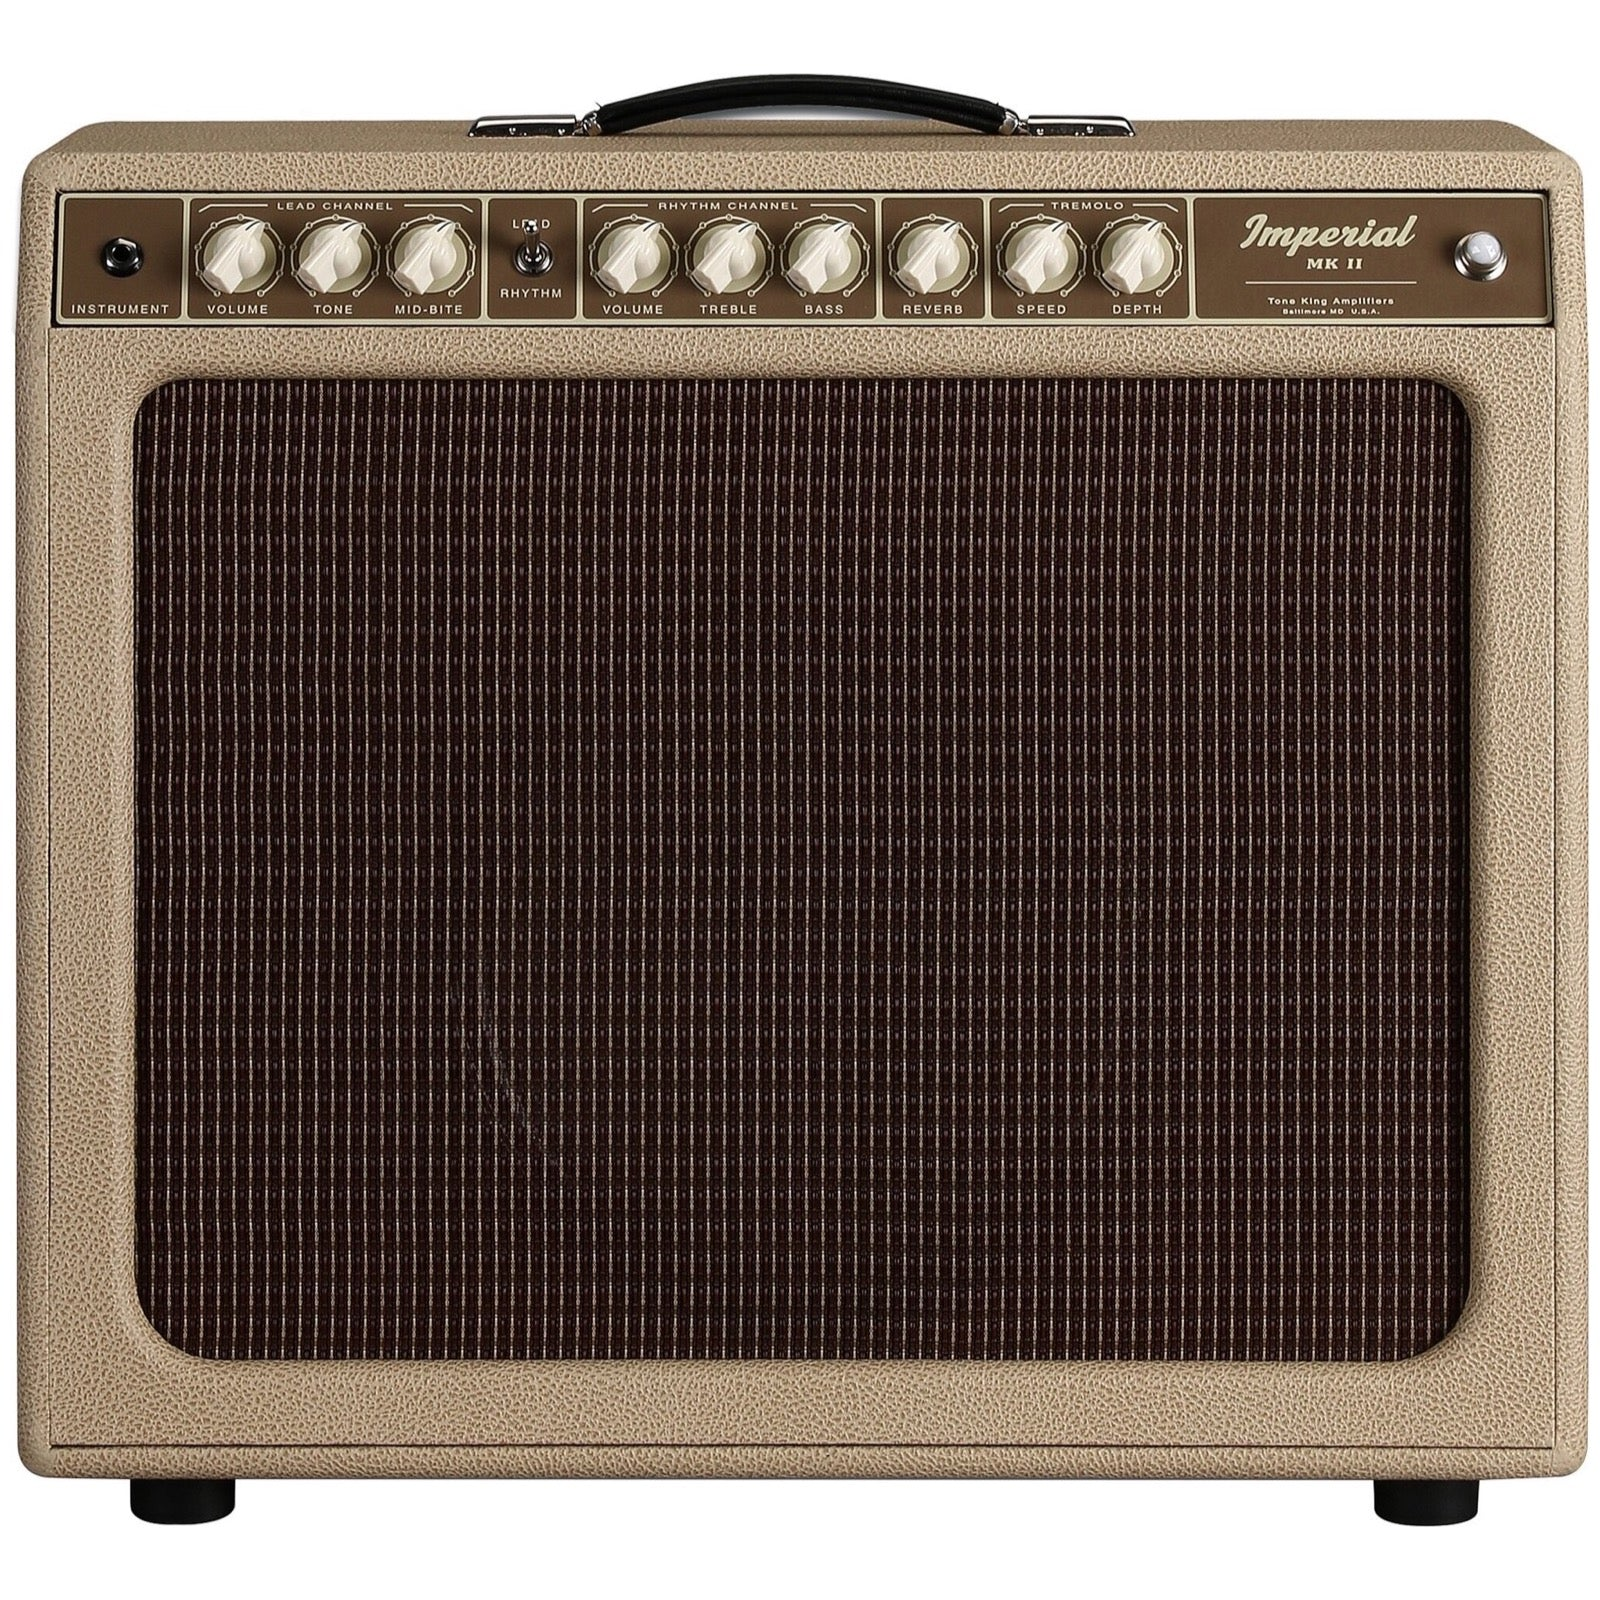 Tone King Imperial MkII (20 watts, 1x12 Inch), Cream